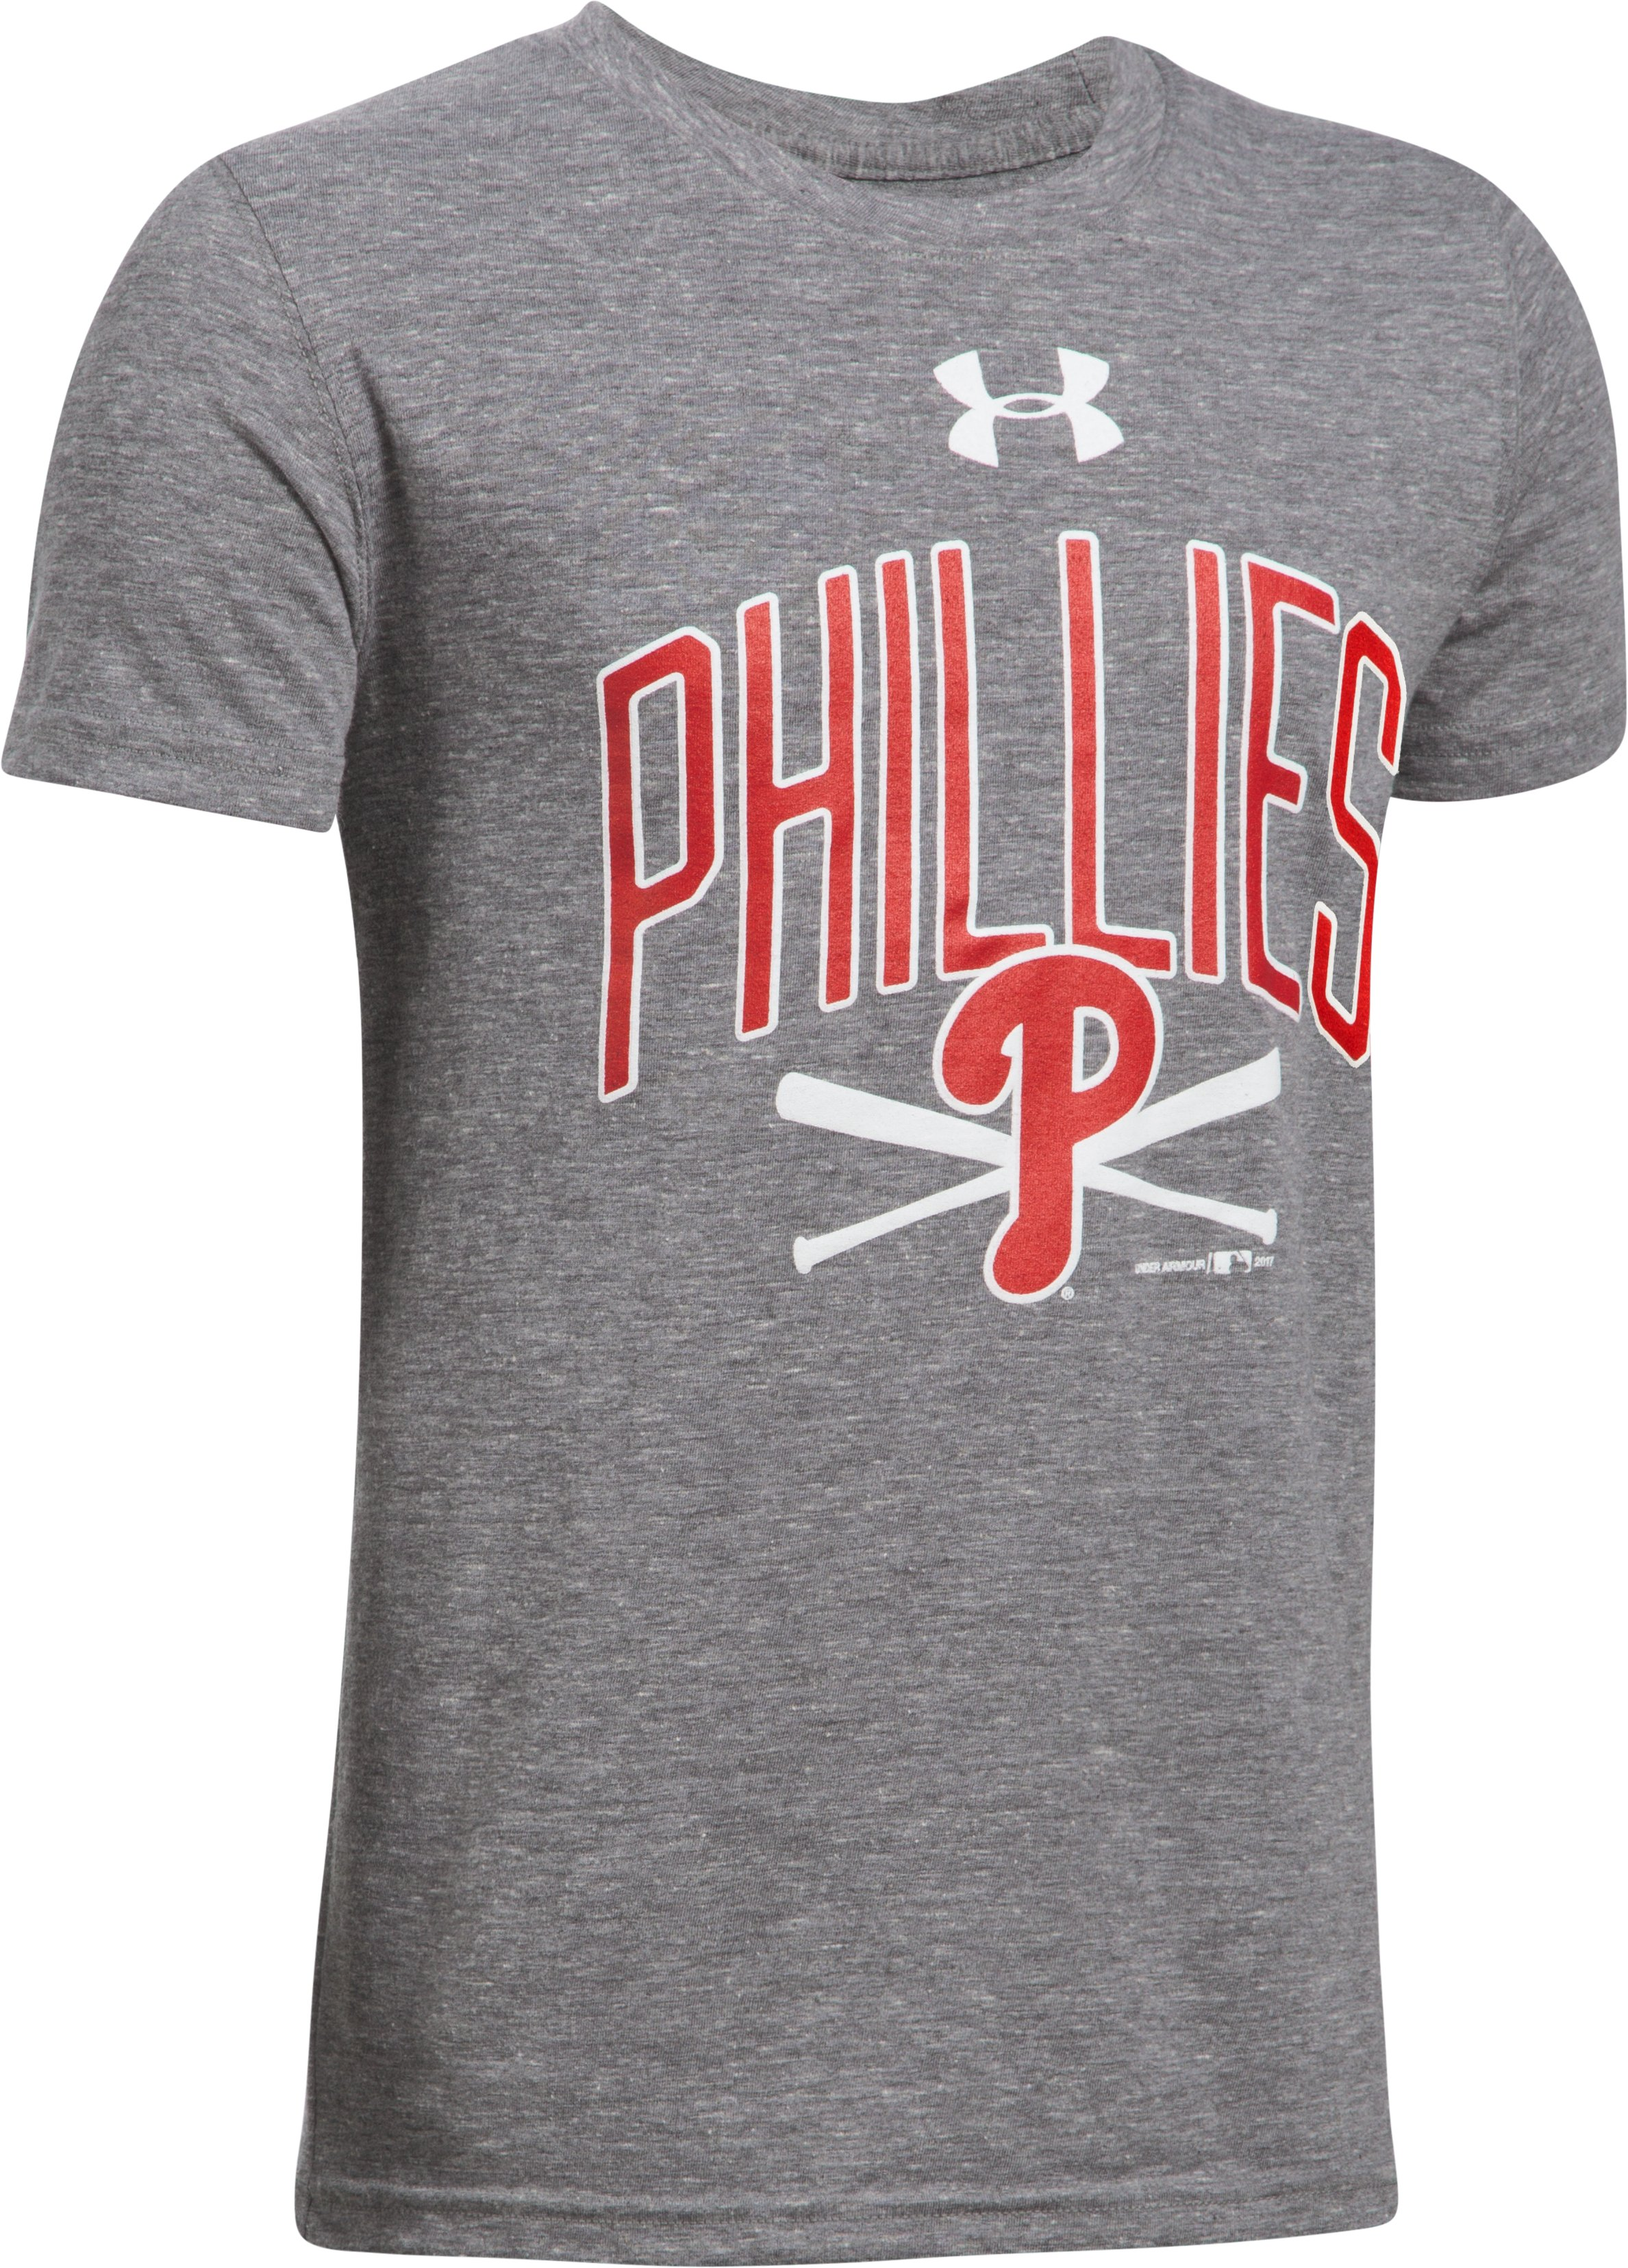 Boys' Philadelphia Phillies Tri-Blend T-Shirt, True Gray Heather